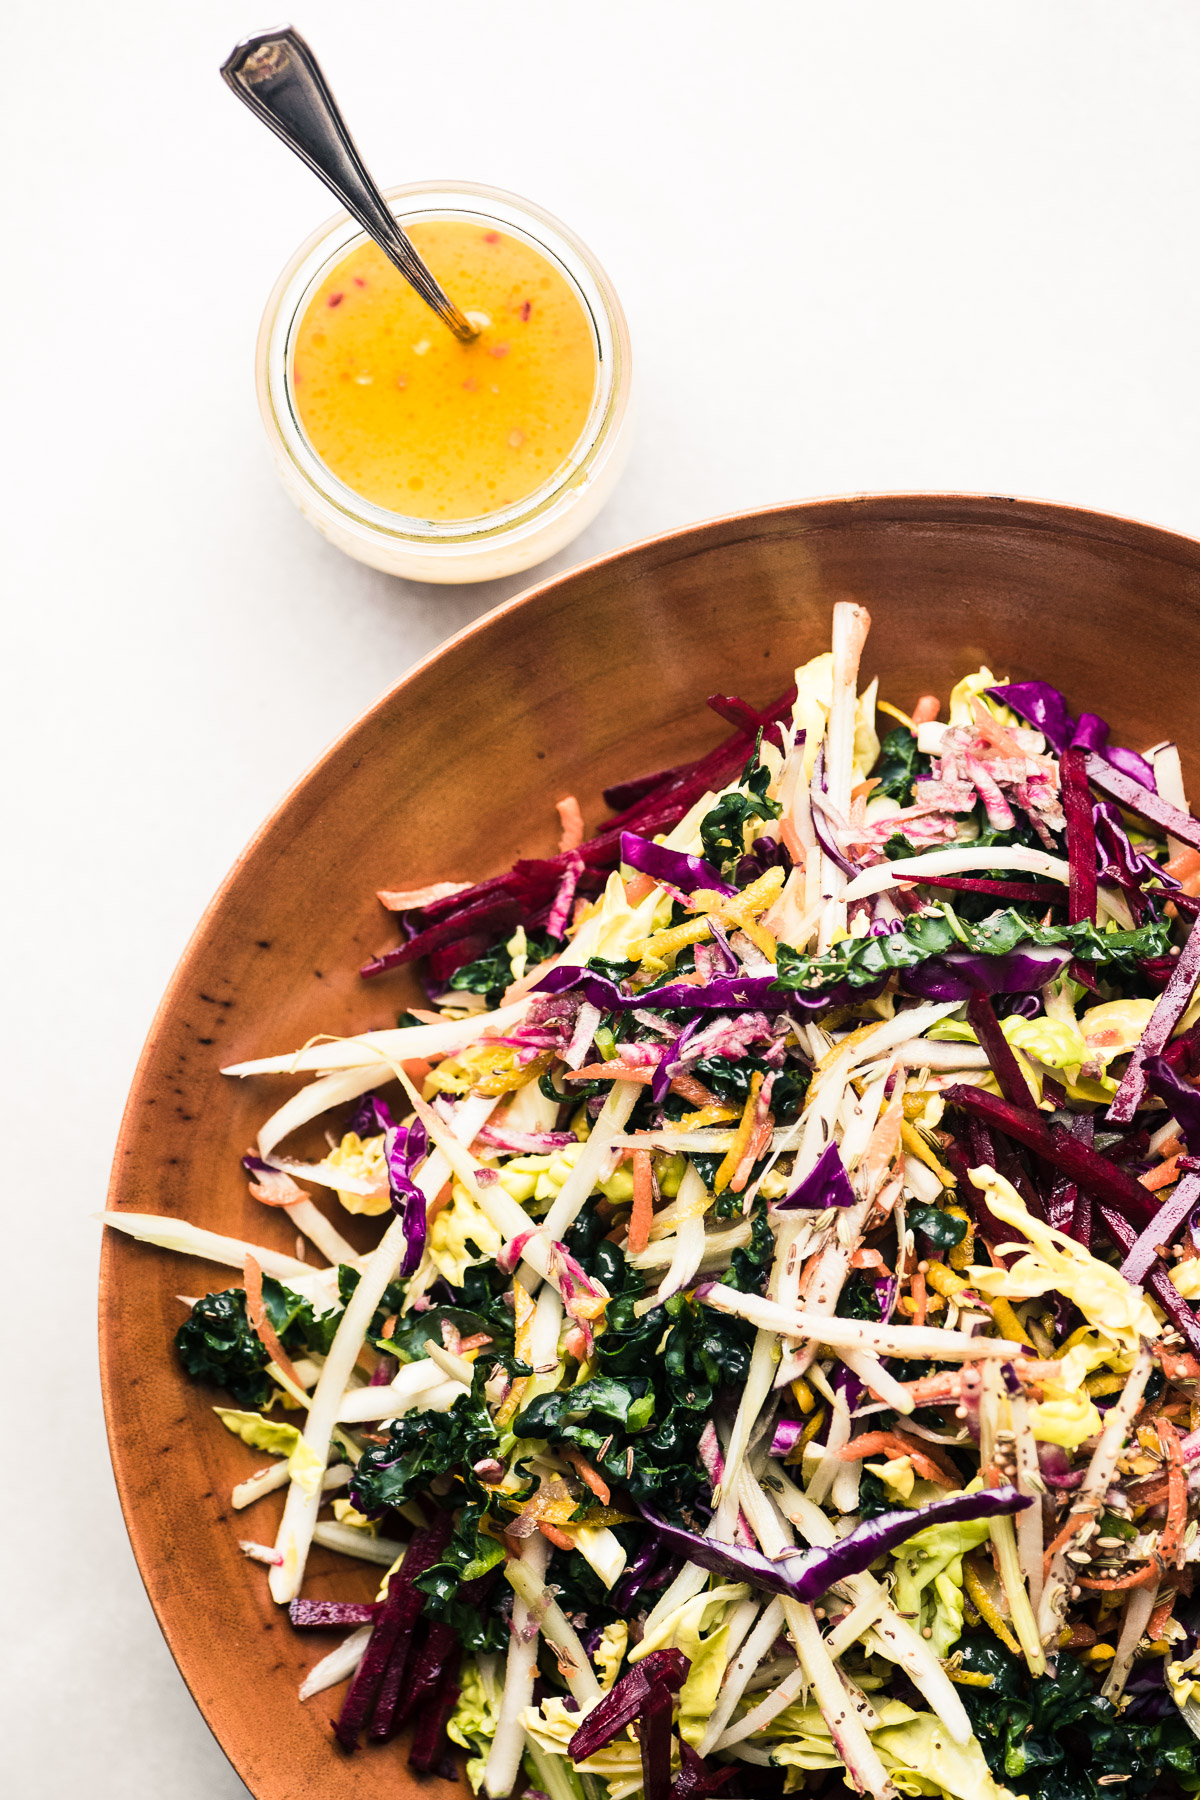 Vibrant Winter Slaw in a wooden bowl with citrus vinaigrette